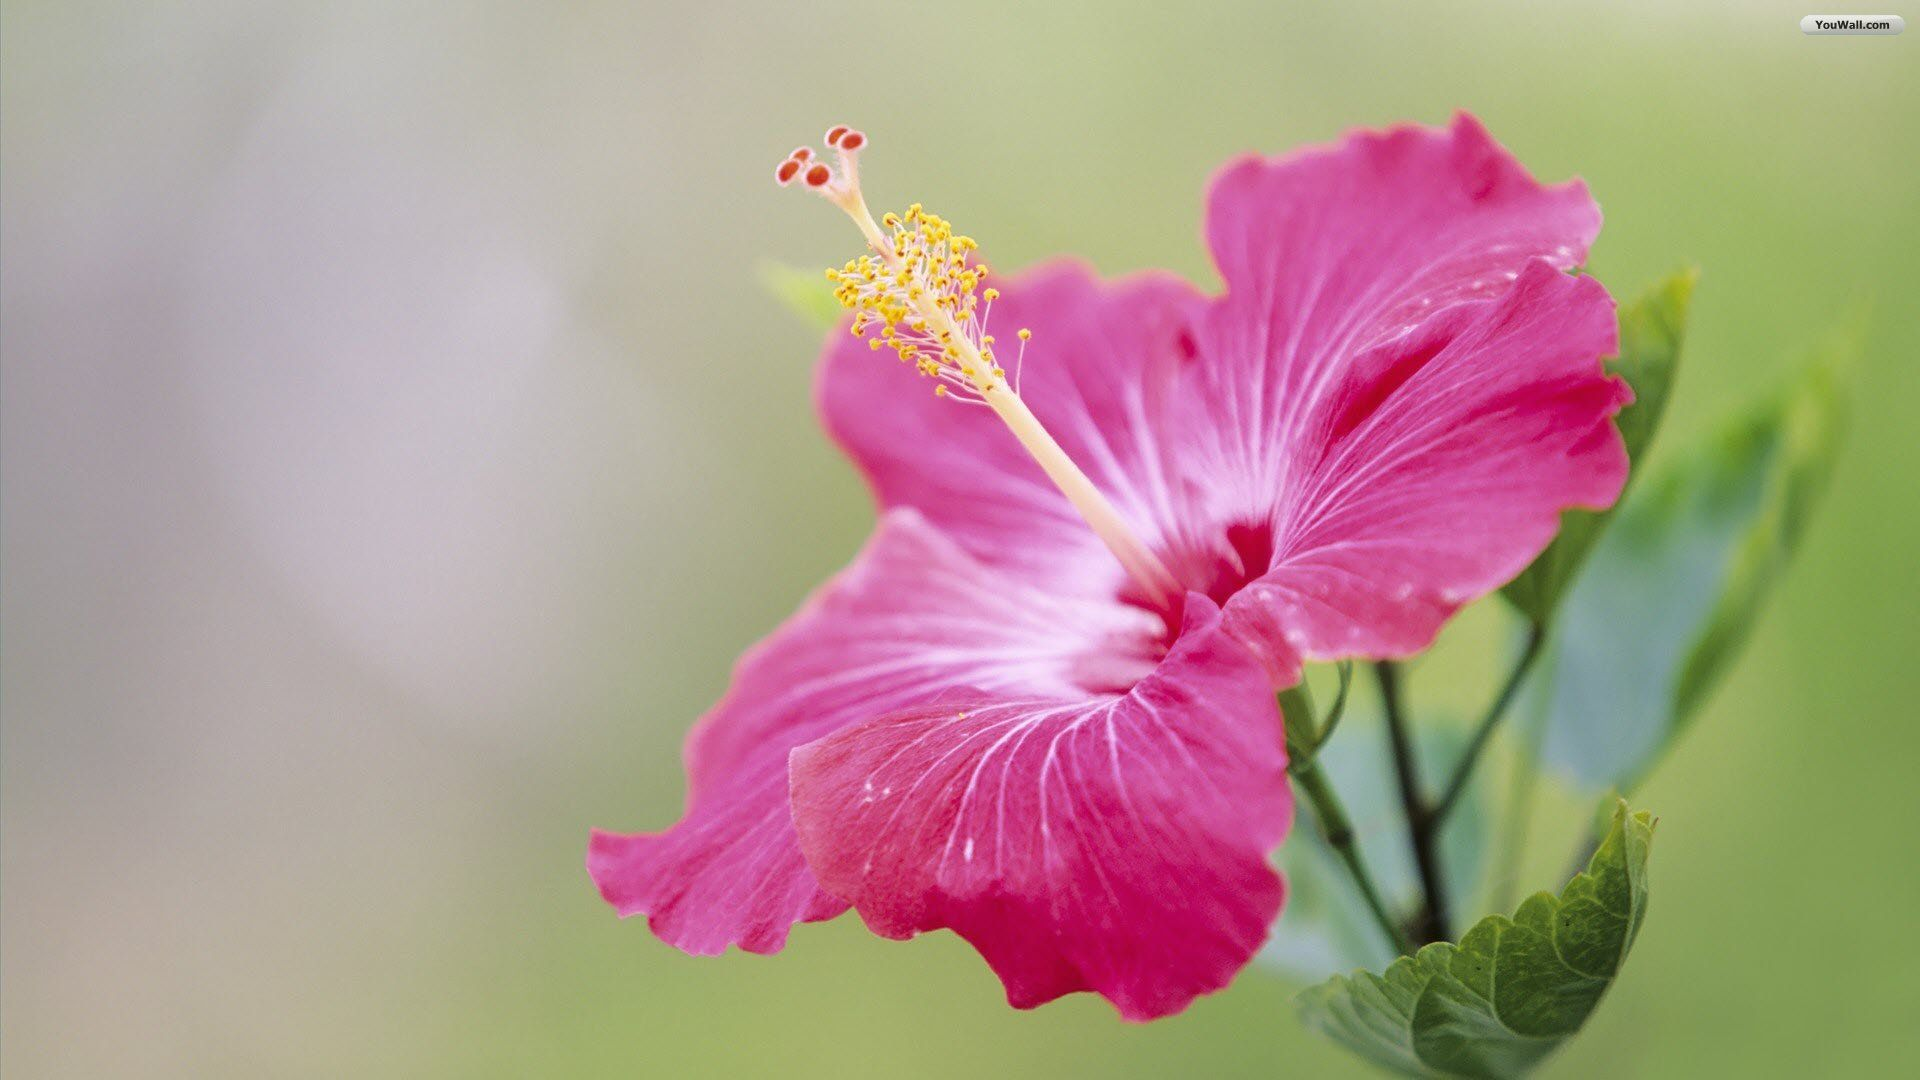 Pretty flowers youwall pretty pink flower wallpaper wallpaper hibiscus flower meaning and symbolism izmirmasajfo Gallery